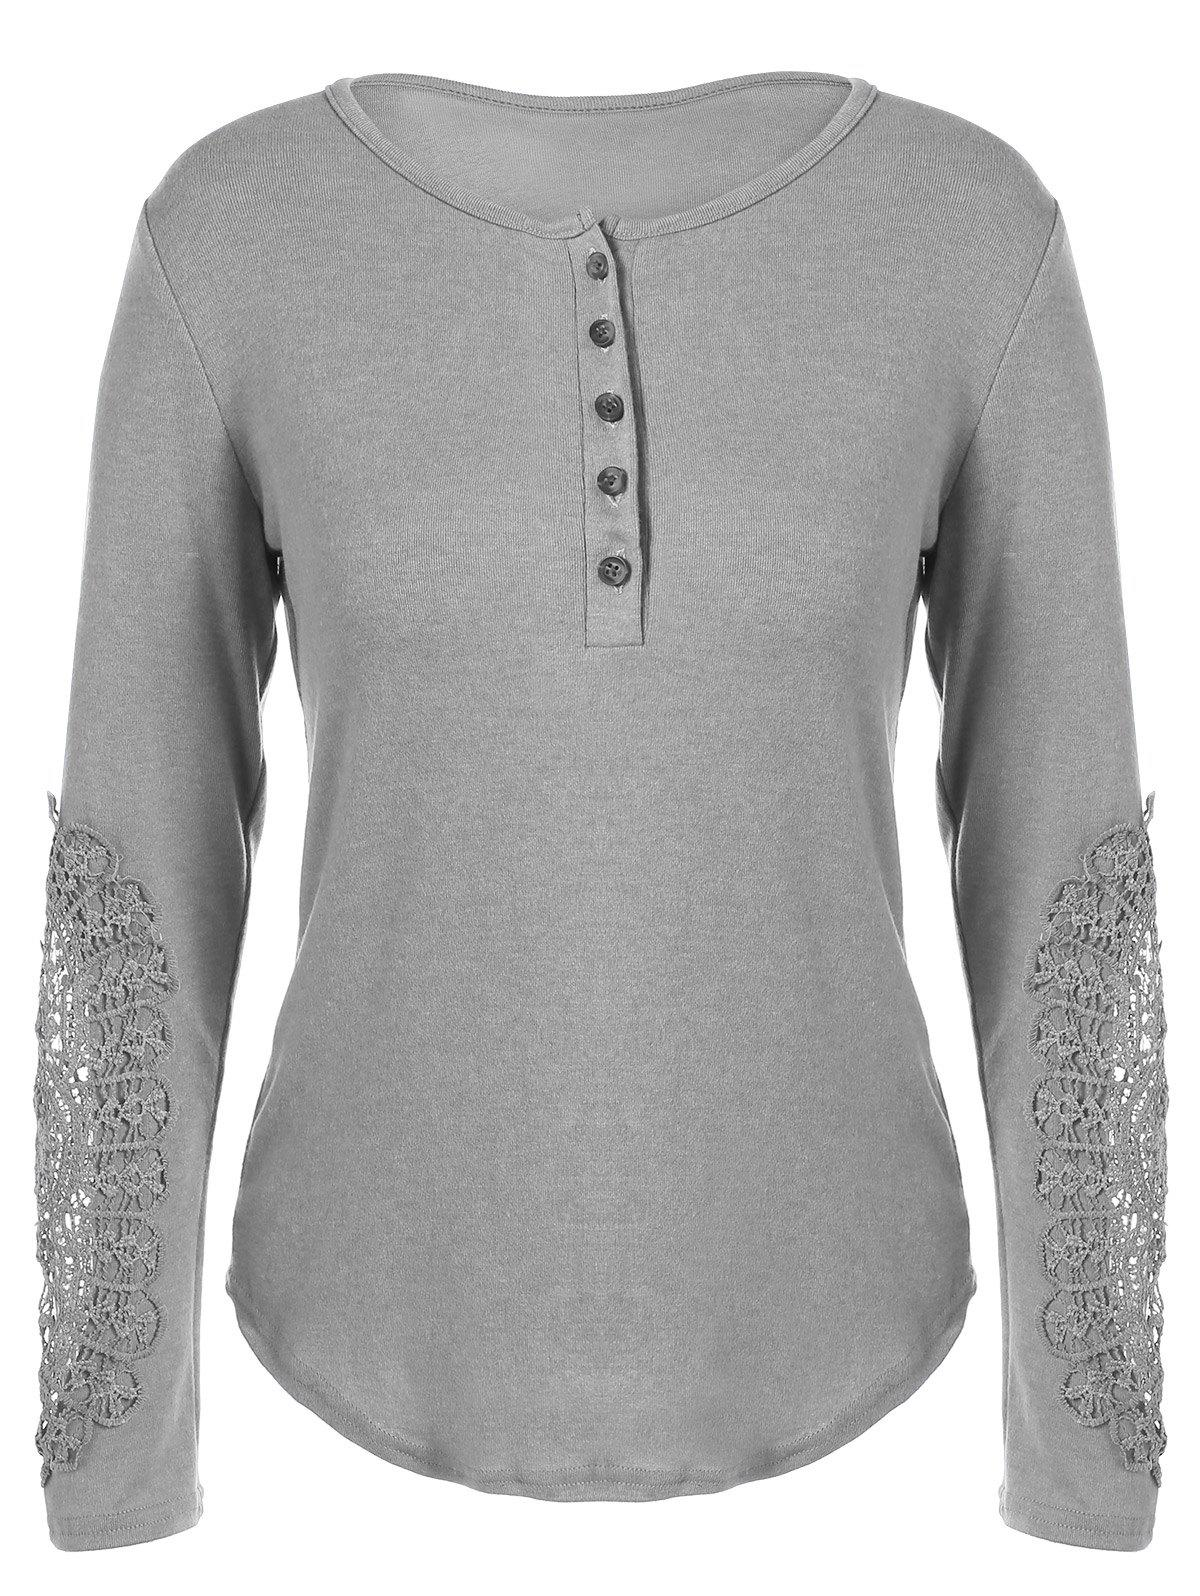 Concise Openwork Lace Buttons T-Shirt - GRAY S